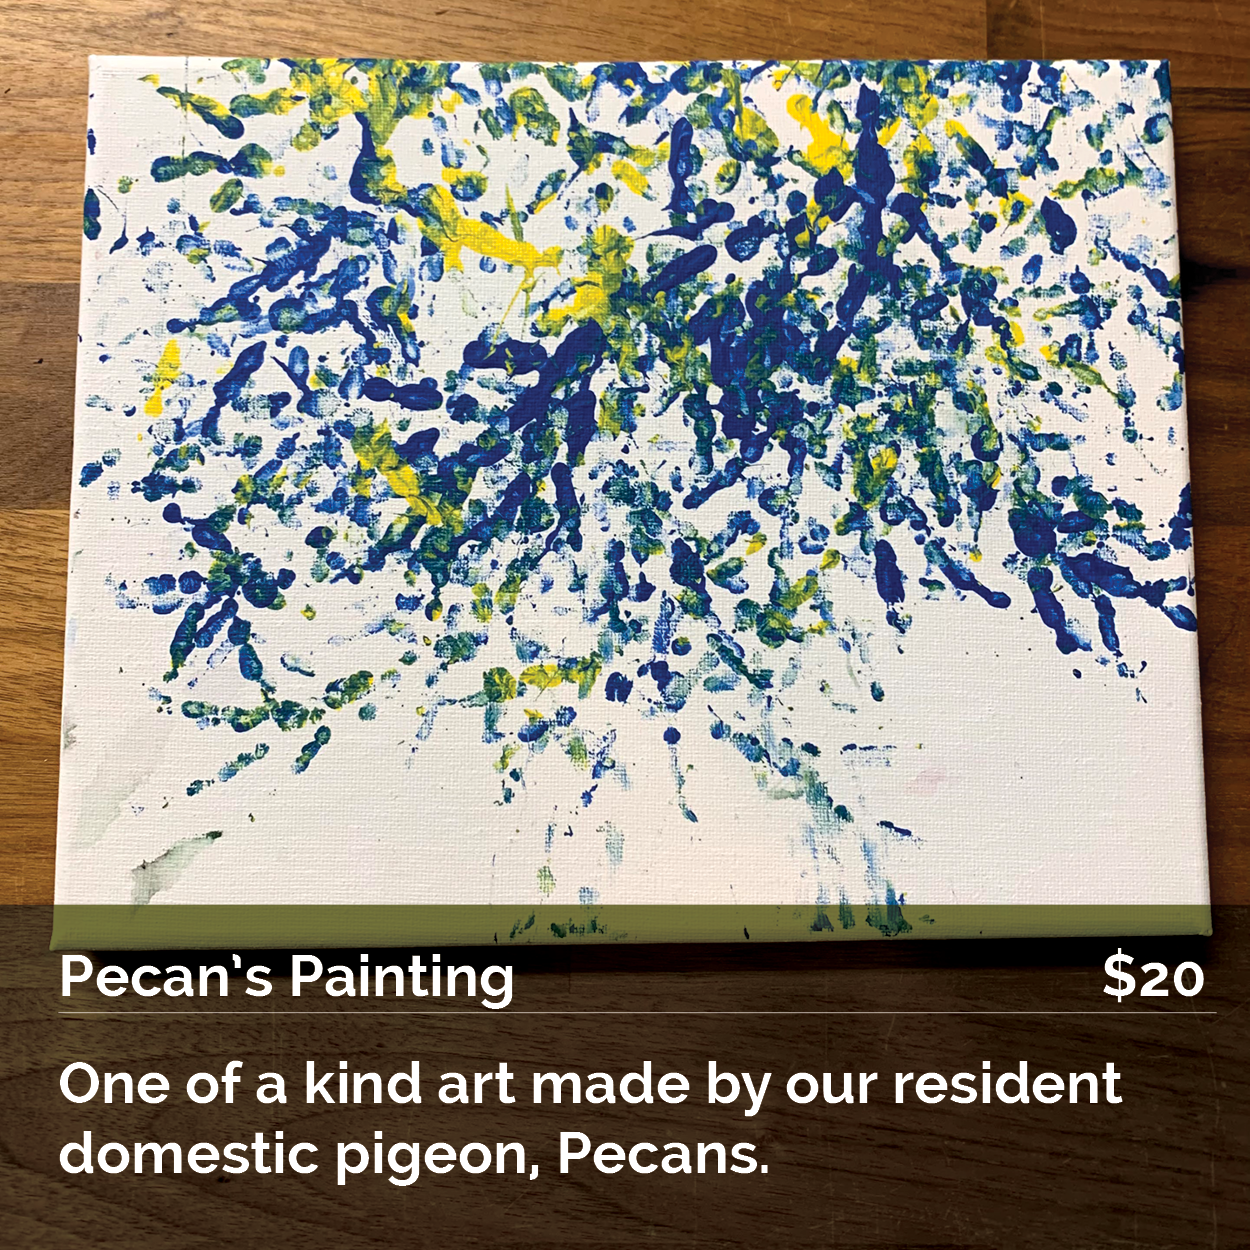 Painting by Pecans